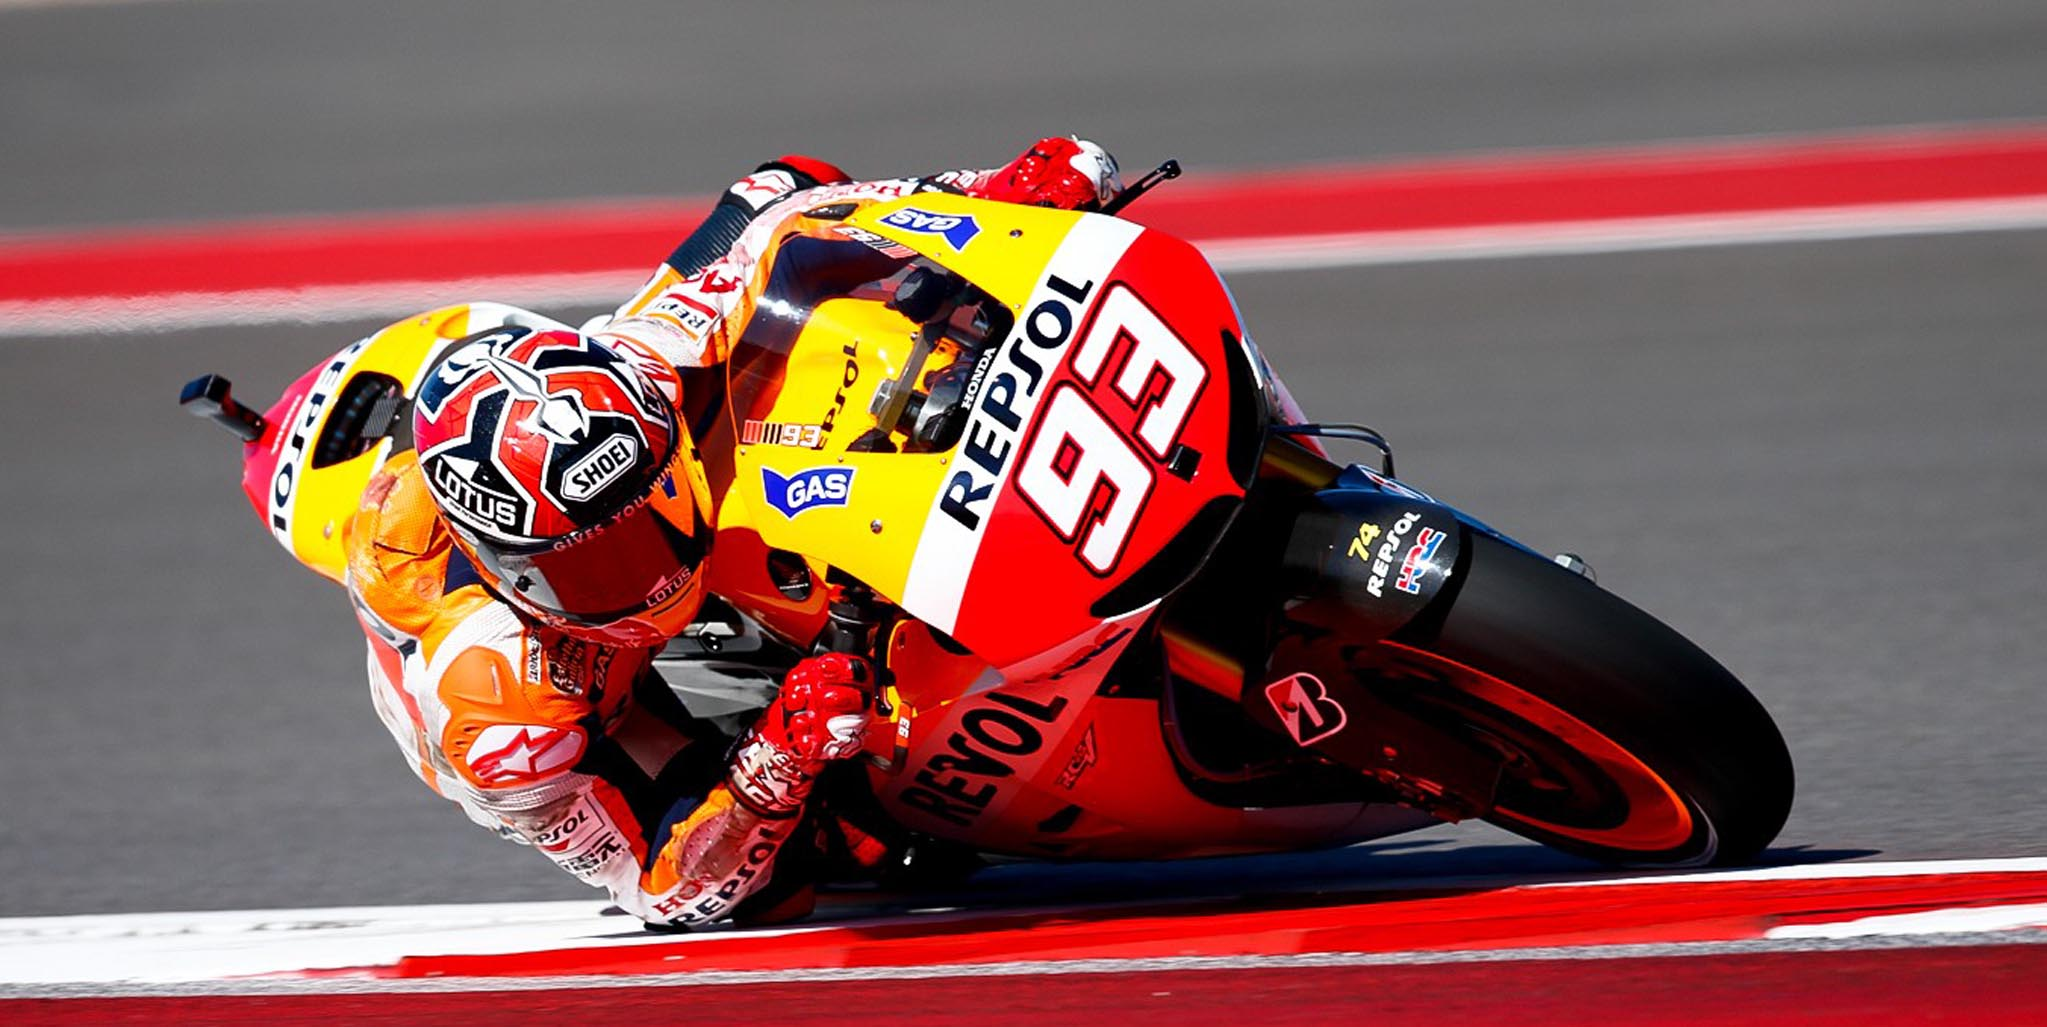 hd motogp wallpaper - wallpapersafari